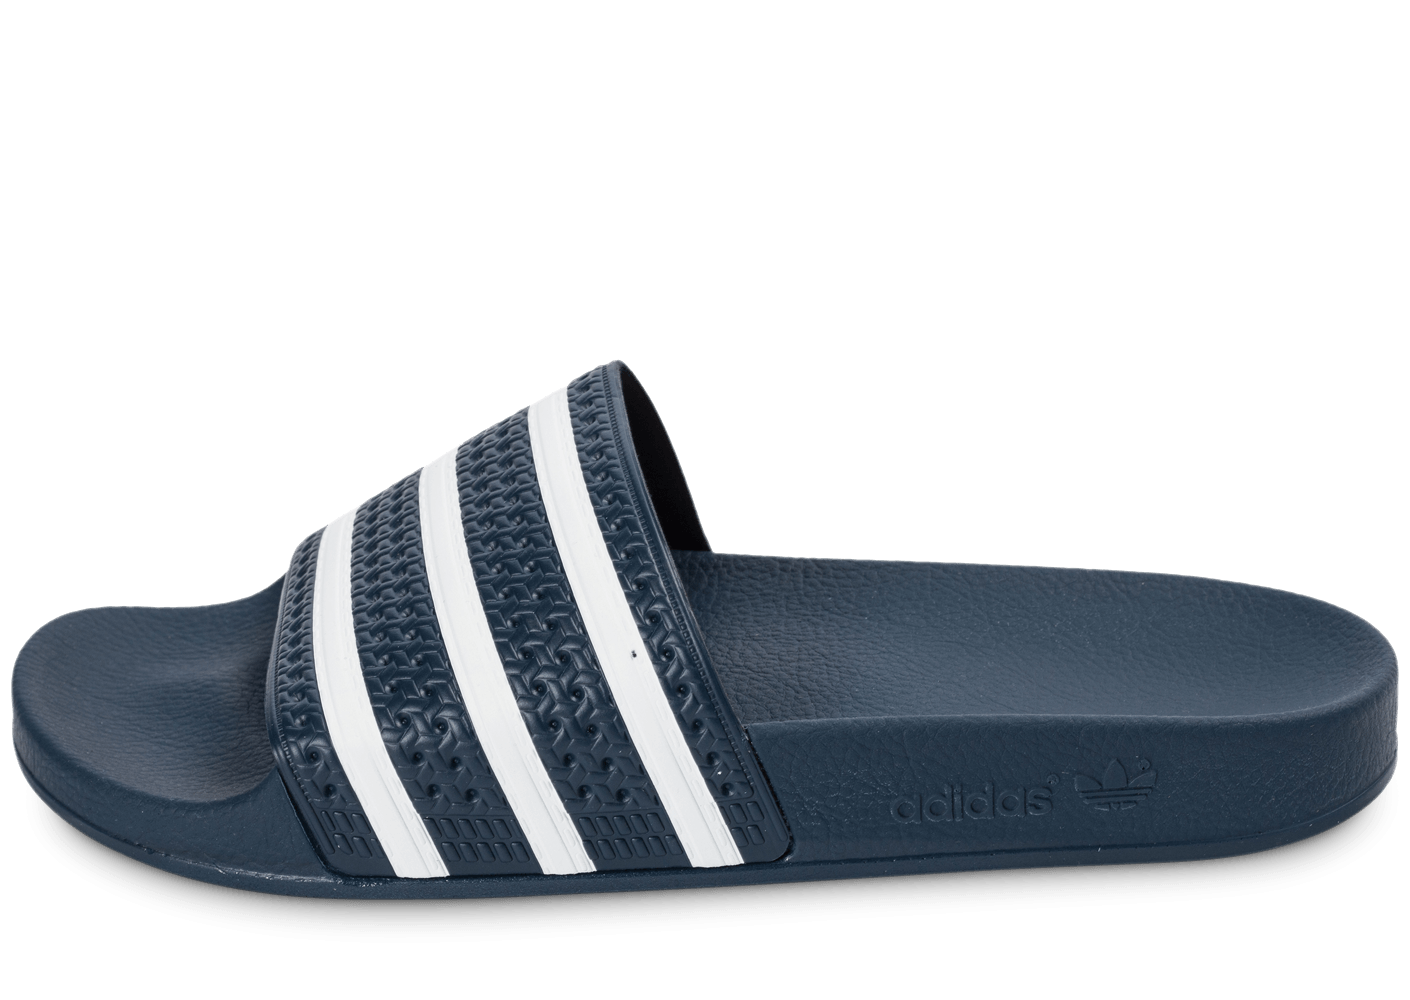 Chaussures Adidas Adilette blanches homme xHBEIrFZPg